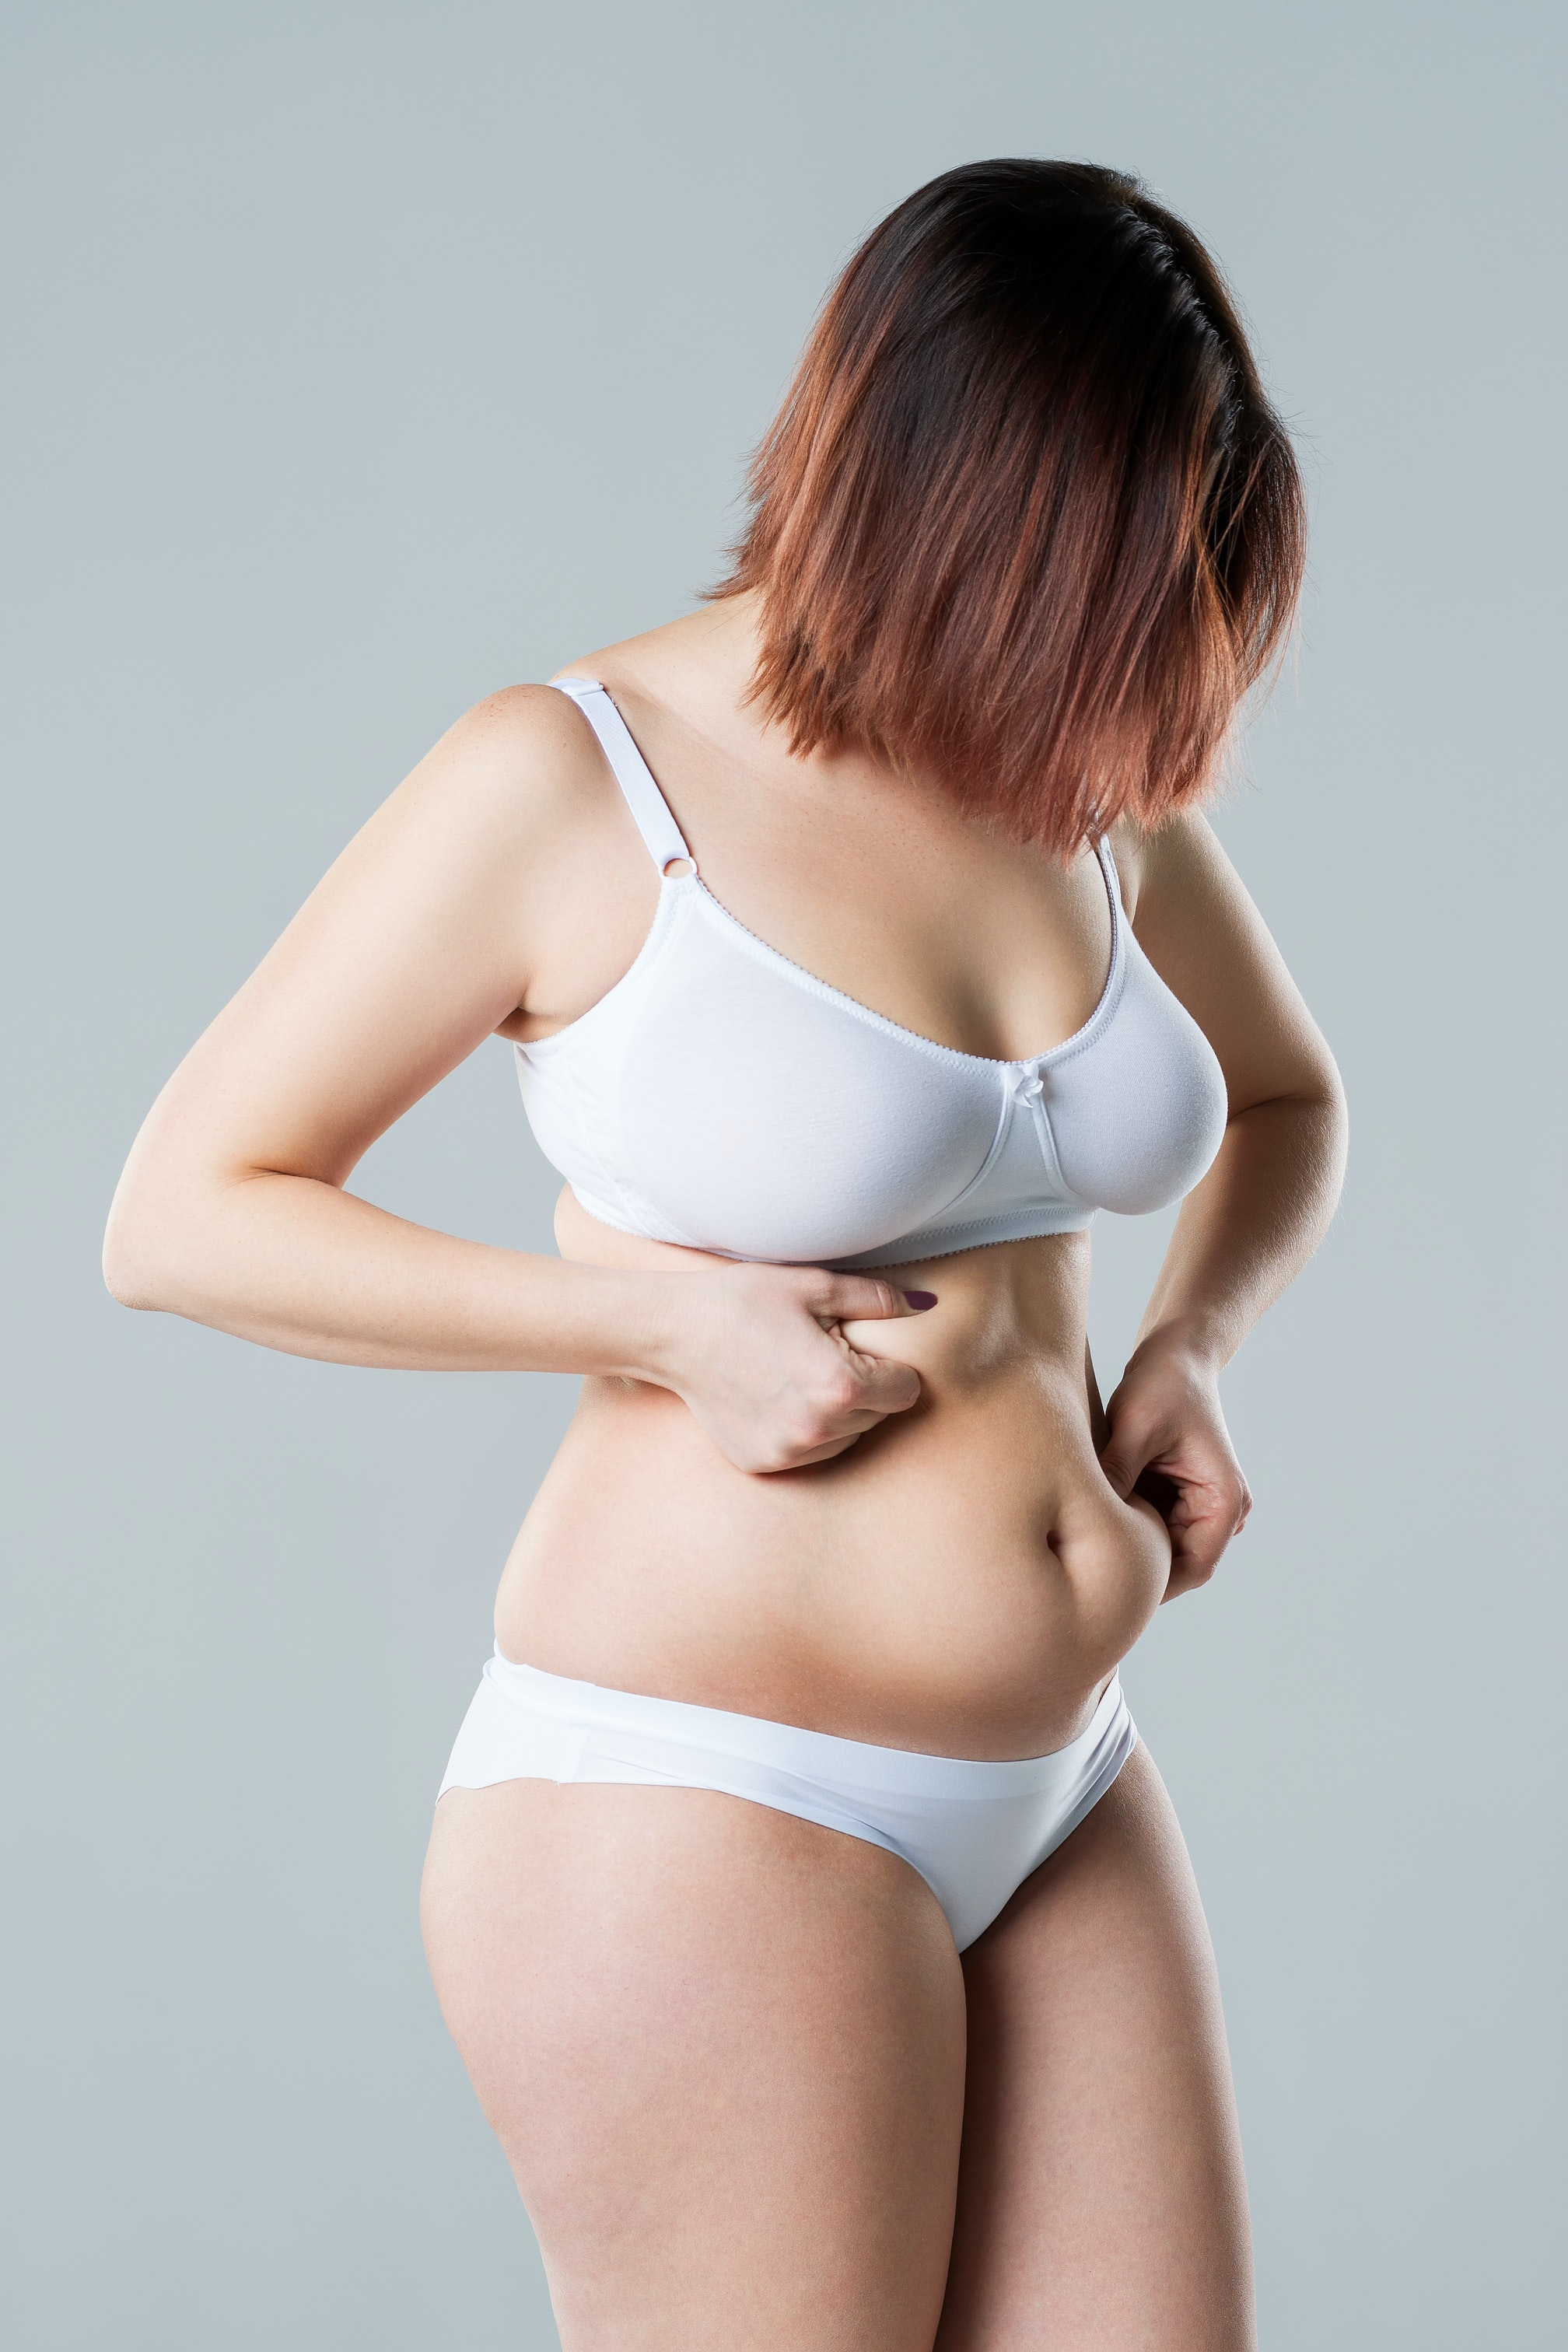 High Belly Fat: How To Lose it and Keep it Away